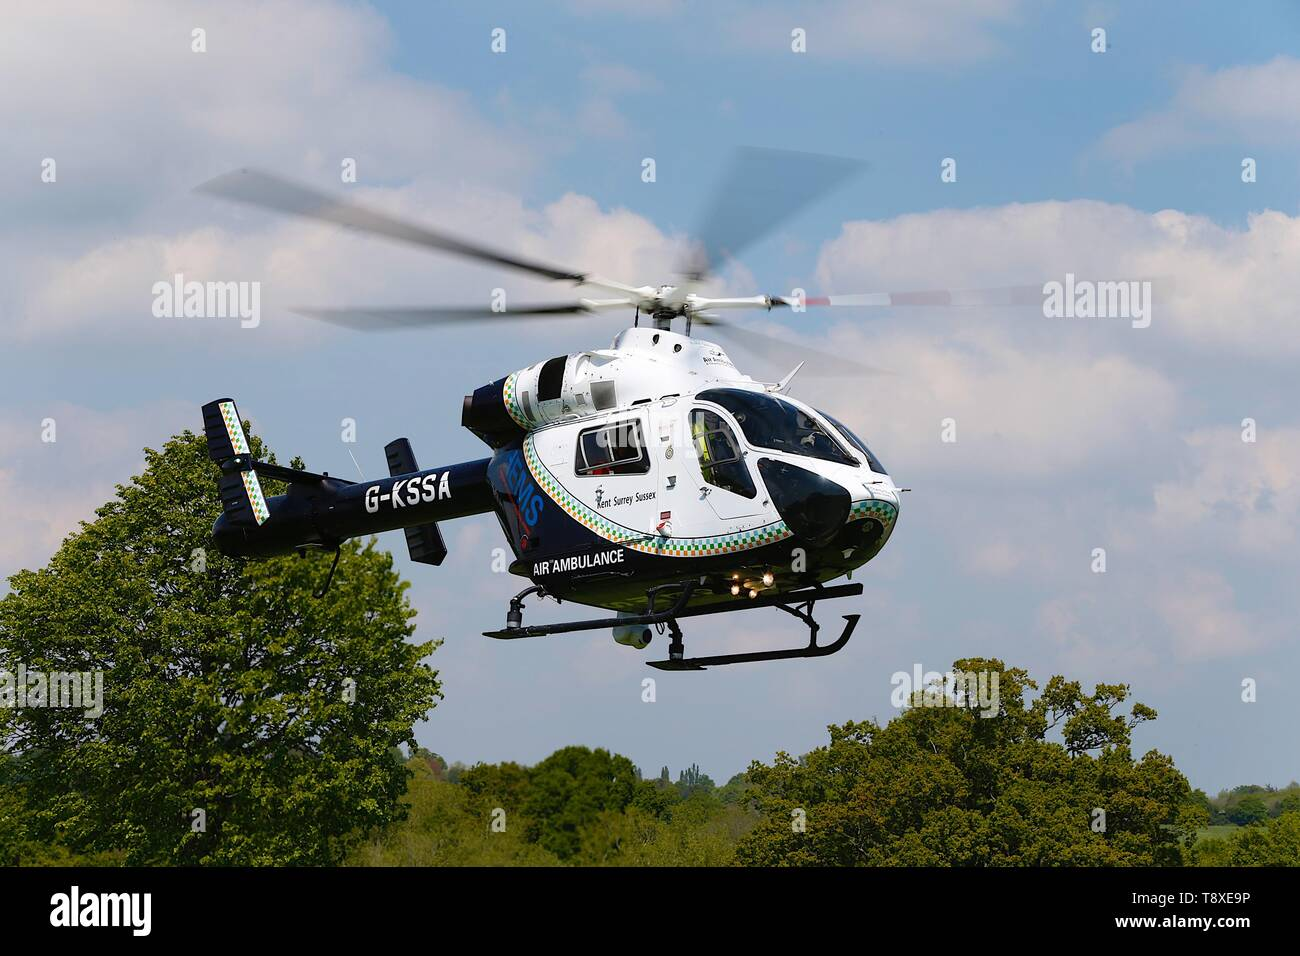 Tenterden, Kent, UK. 15th May, 2019. A Kent Surrey Sussex air ambulance has been dispatched to an incident in the town centre. Medical staff are at scene. The emergency has taken place at the Old Dairy Brewery just off the high street in the town centre. The MD902 Explorer helicopter takes off into the air. Credit: Paul Lawrenson 2019, Photo Credit: Paul Lawrenson/Alamy Live News Stock Photo